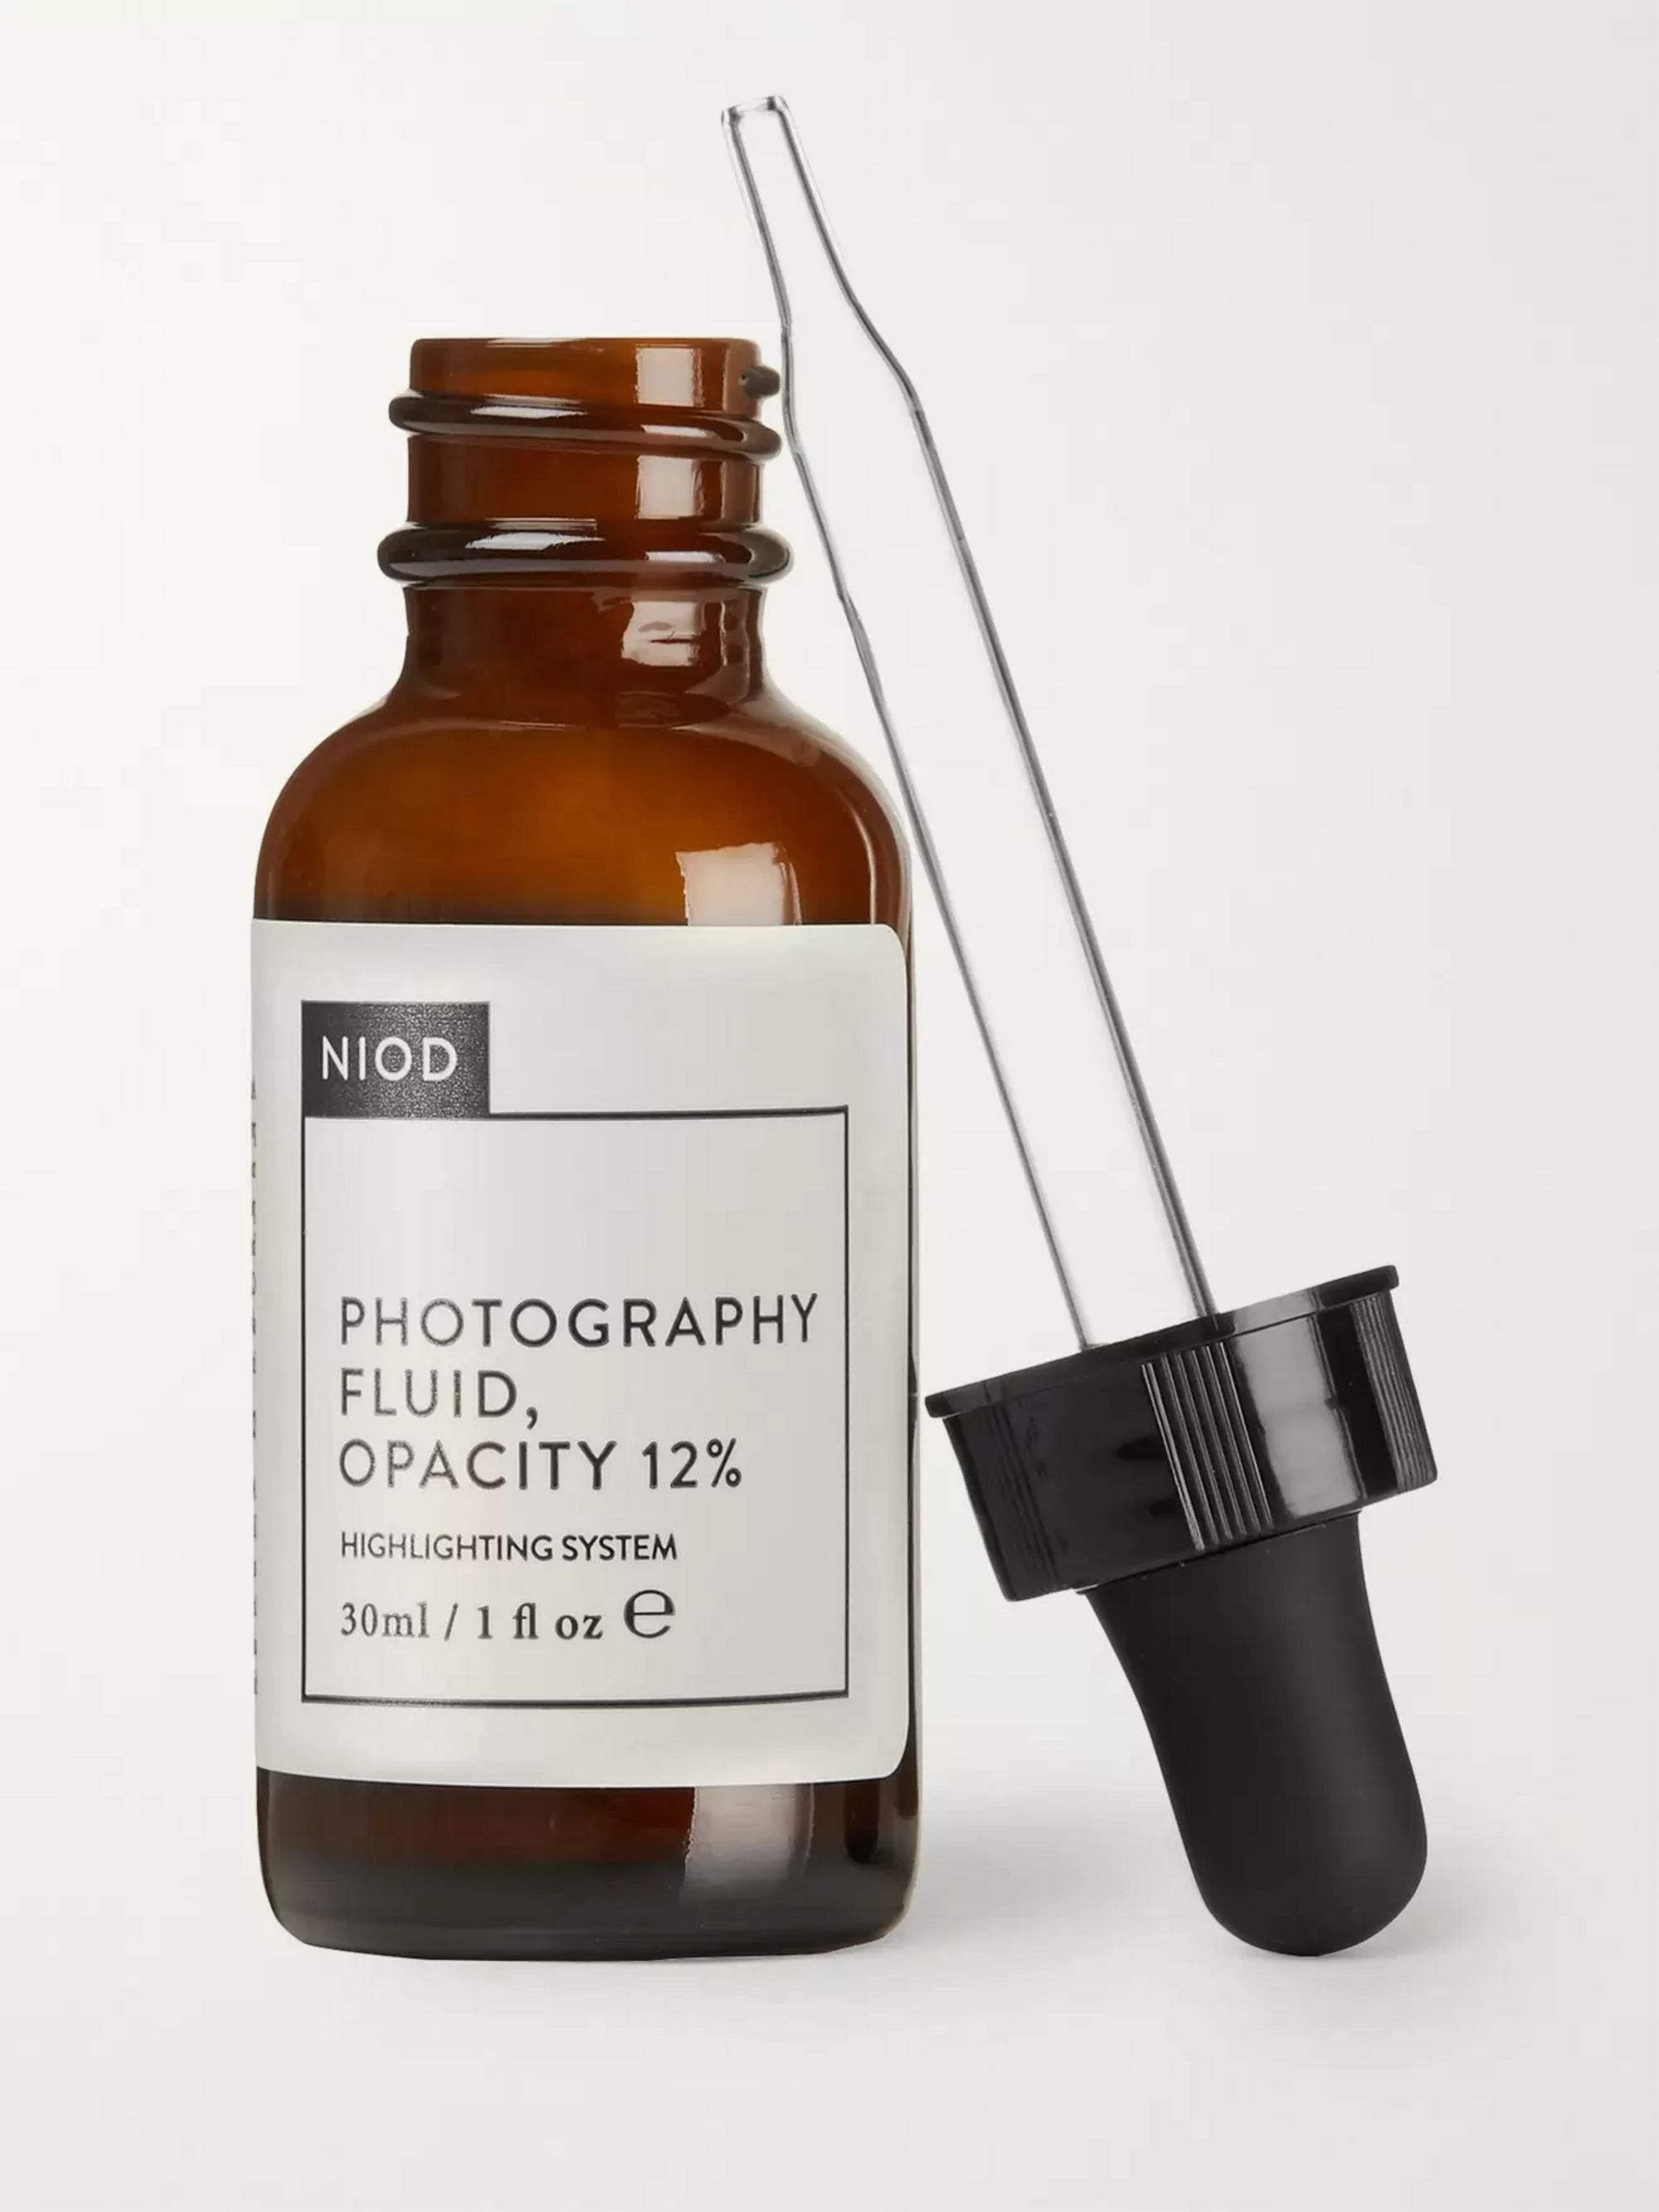 NIOD Photography Fluid, Opacity 12%, 30ml